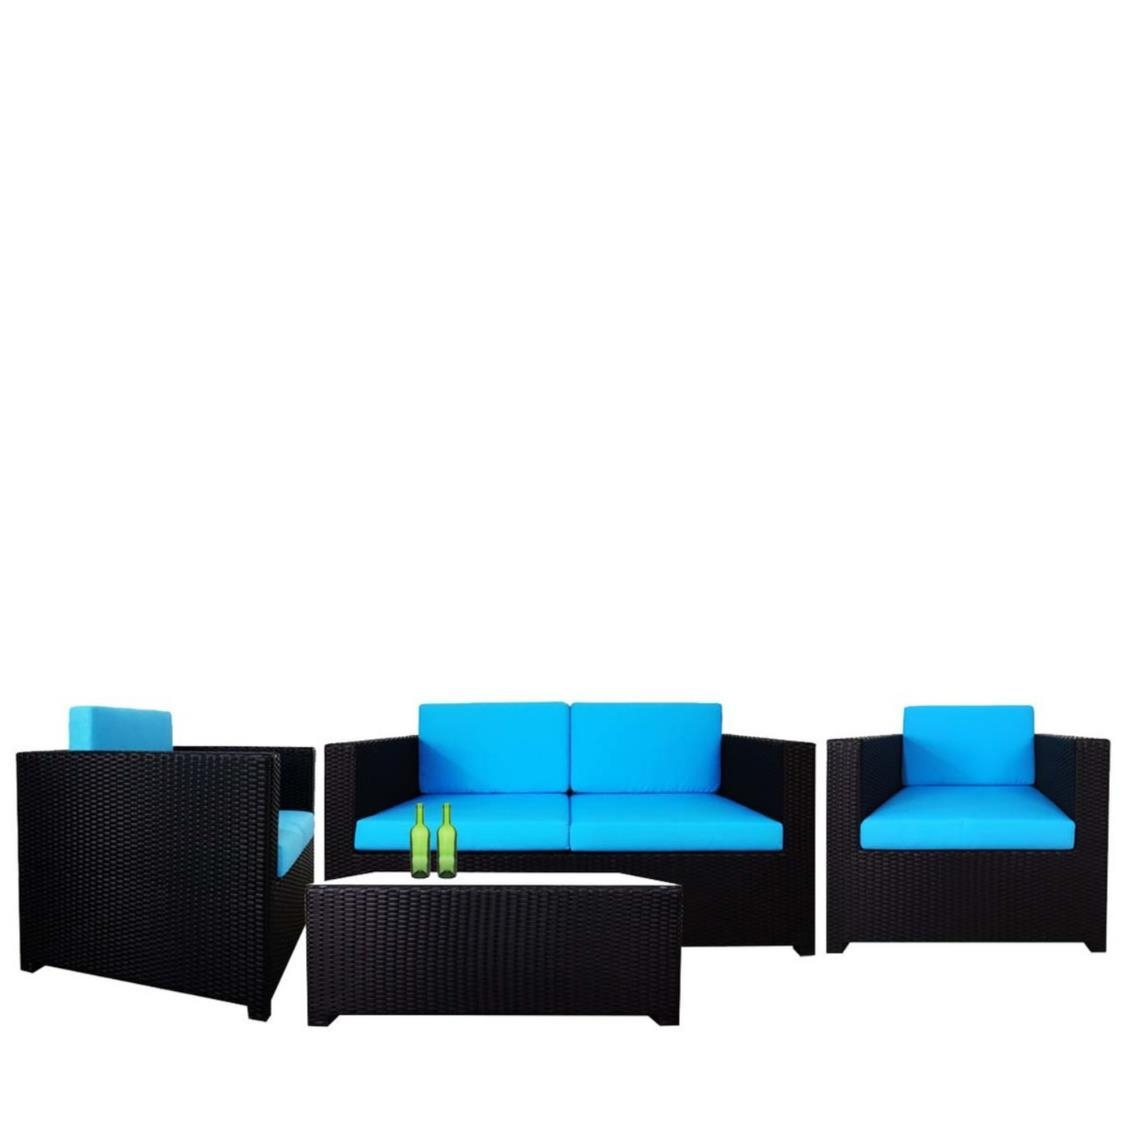 Fiesta Sofa Set II Blue Cushions